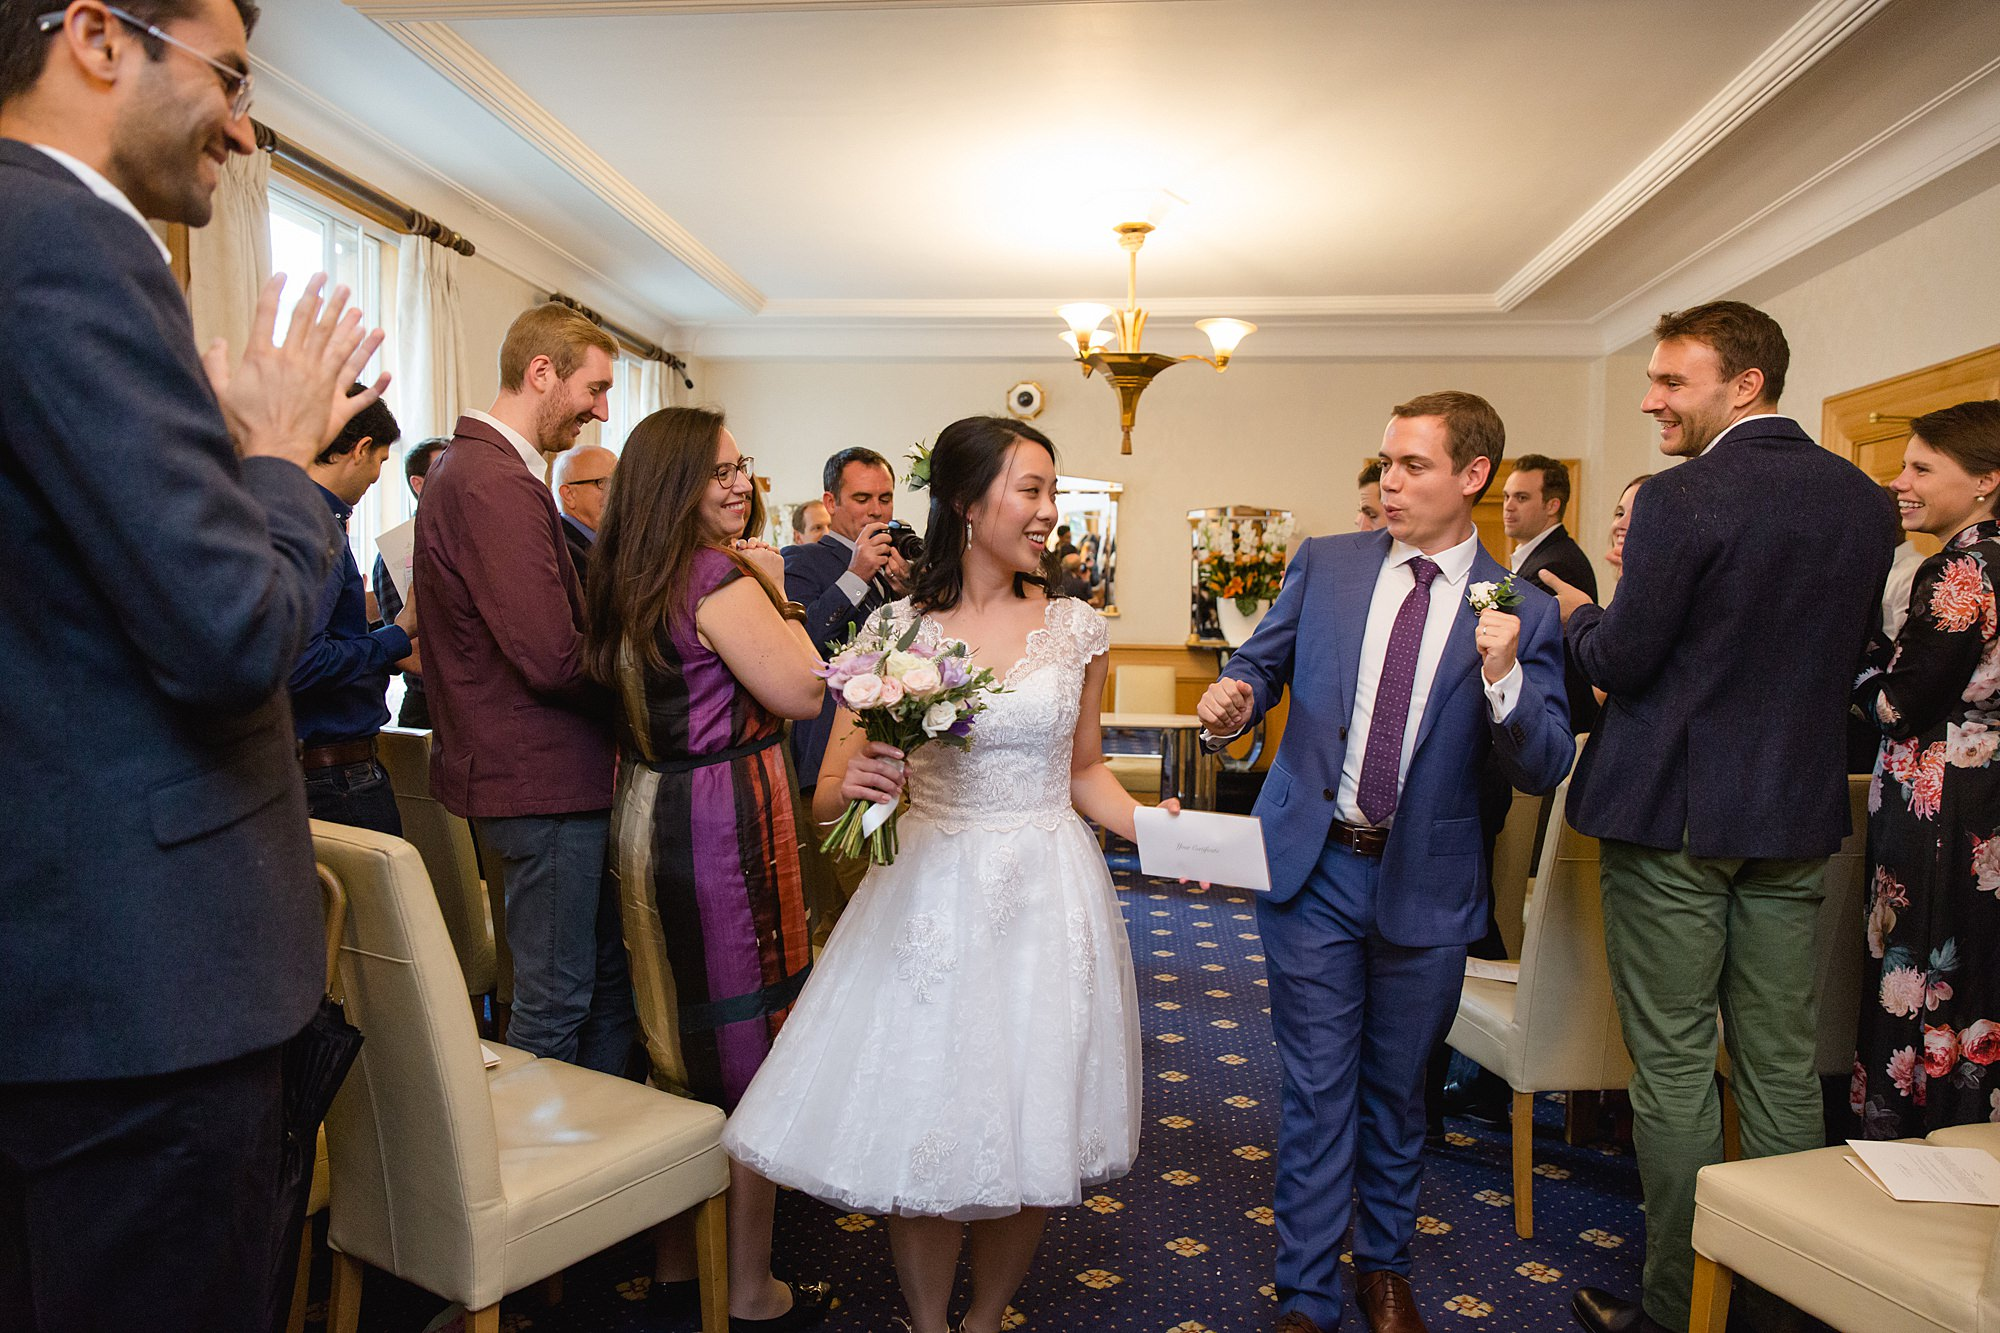 Wandsworth pub wedding bride and groom dance together after wedding ceremony at wandsworth town hal